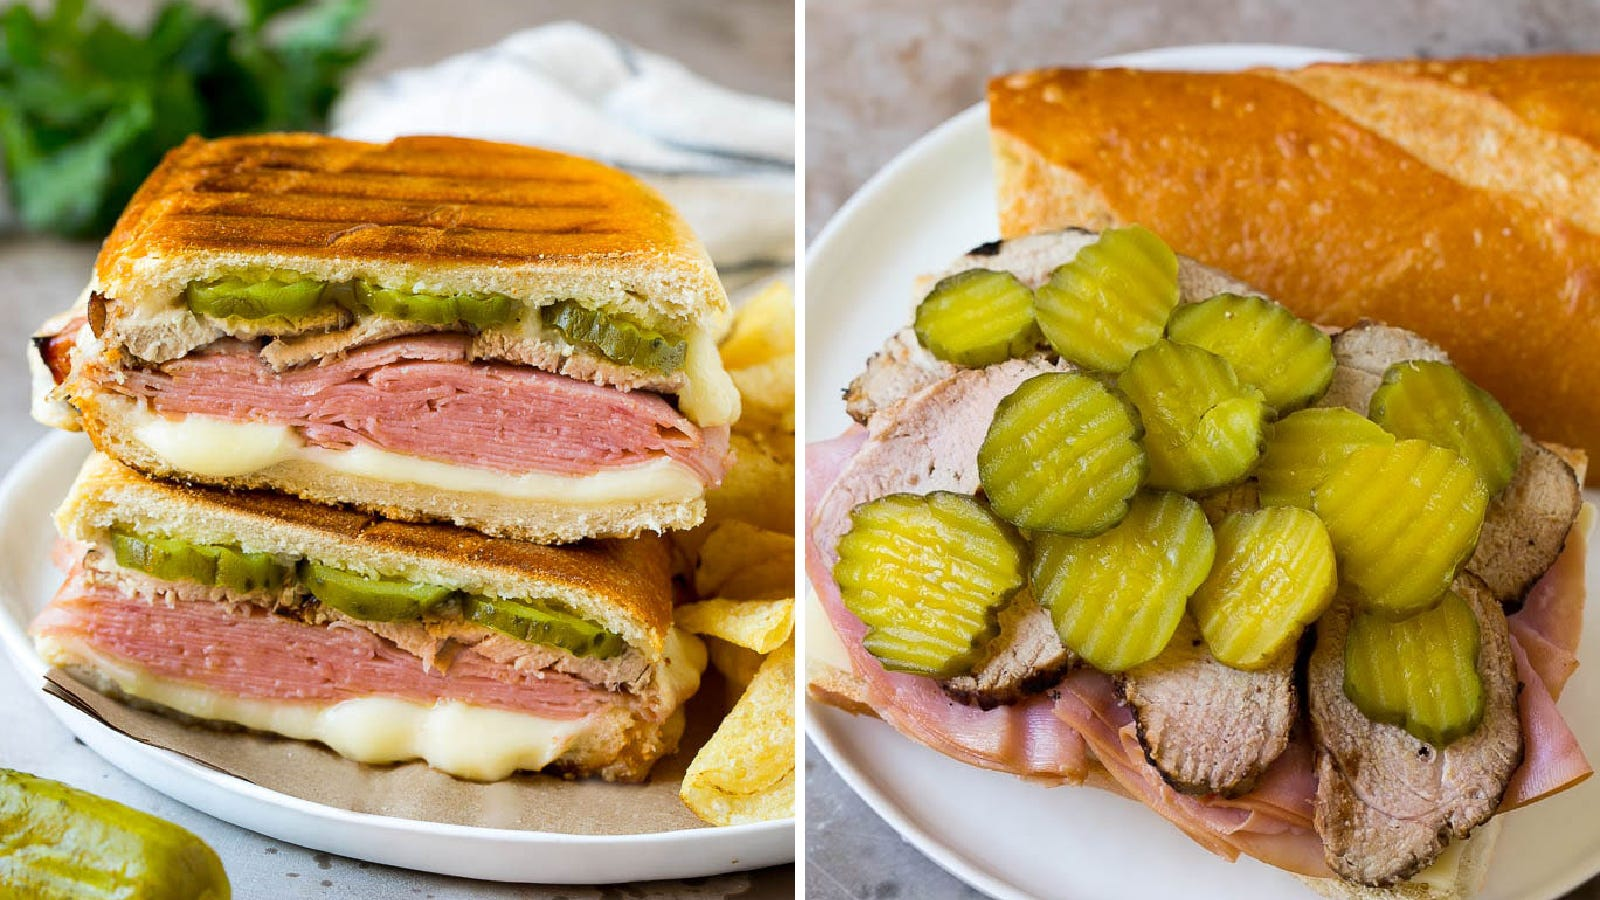 Two images featuring a cuban sandwich filled with pickles, ham, cheese and sliced pork.